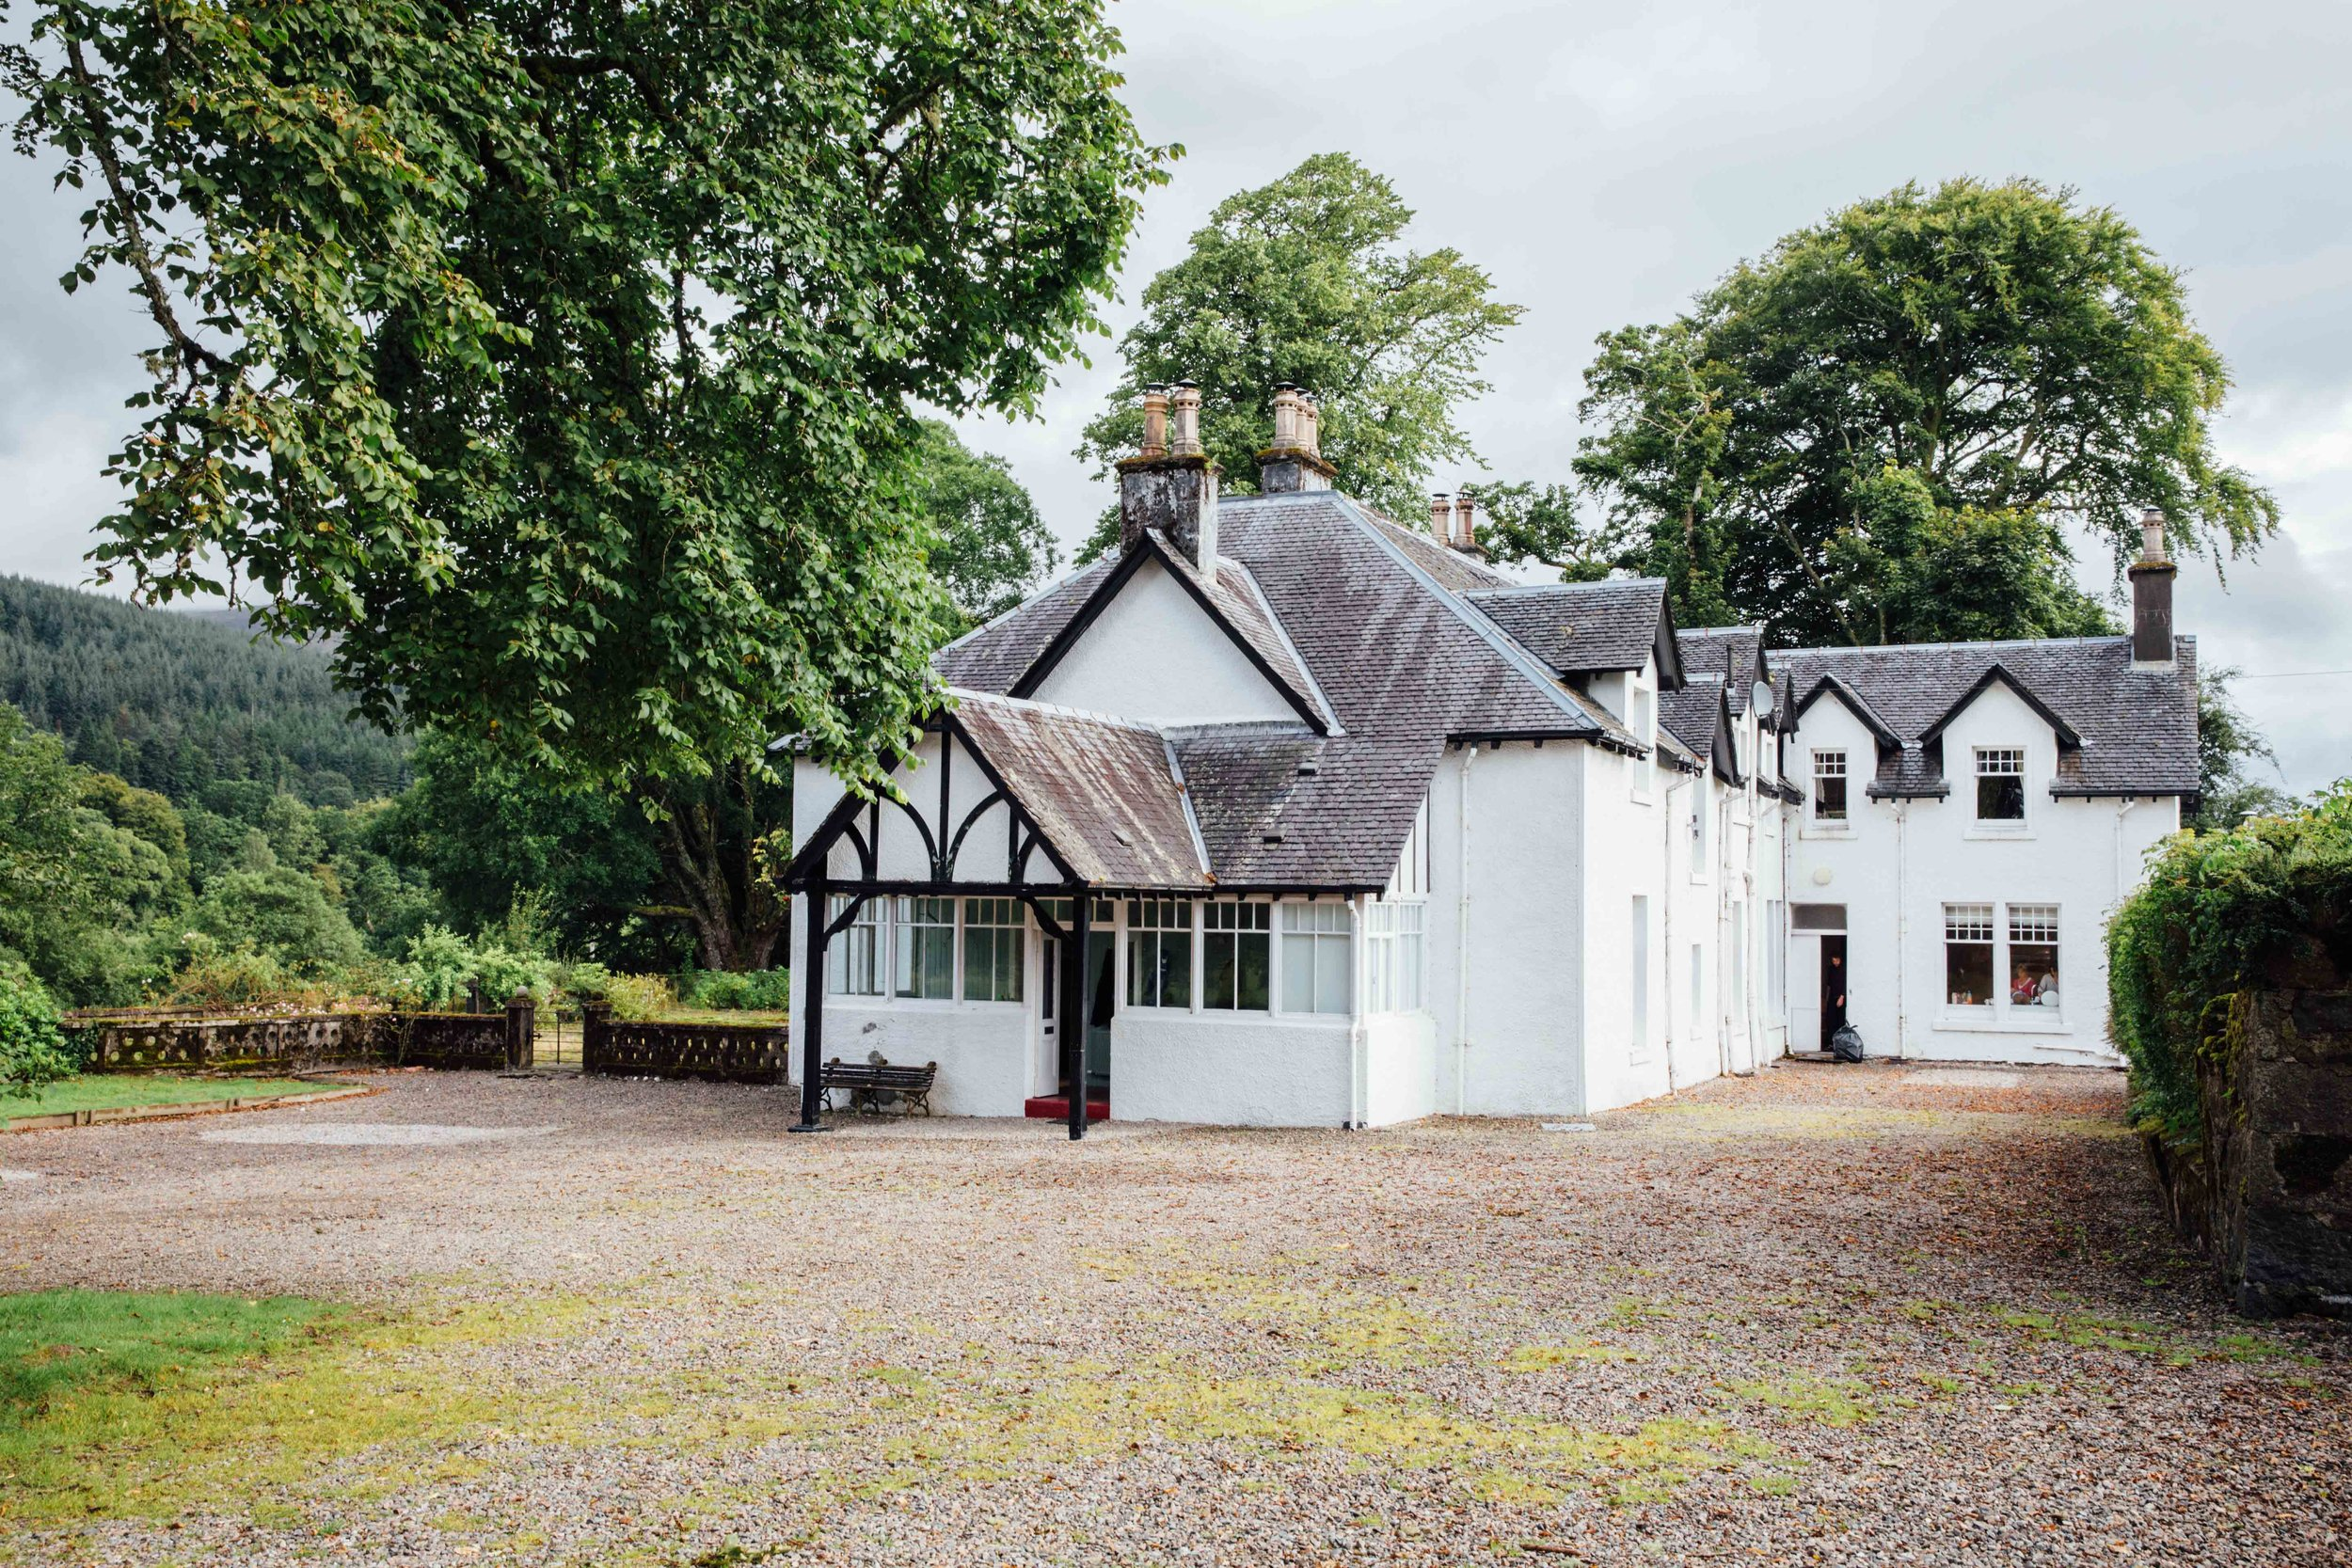 The House - Camisky Lodge is a beautiful Victorian self-catering lodge set within five acres of private land in Torlundy, Fort William, amidst the stunning Inverness-shire countryside on the western coast of Scotland. The house has currently undergone an extensive refurbishment programme, which now offers a luxurious experience in a tranquil setting.